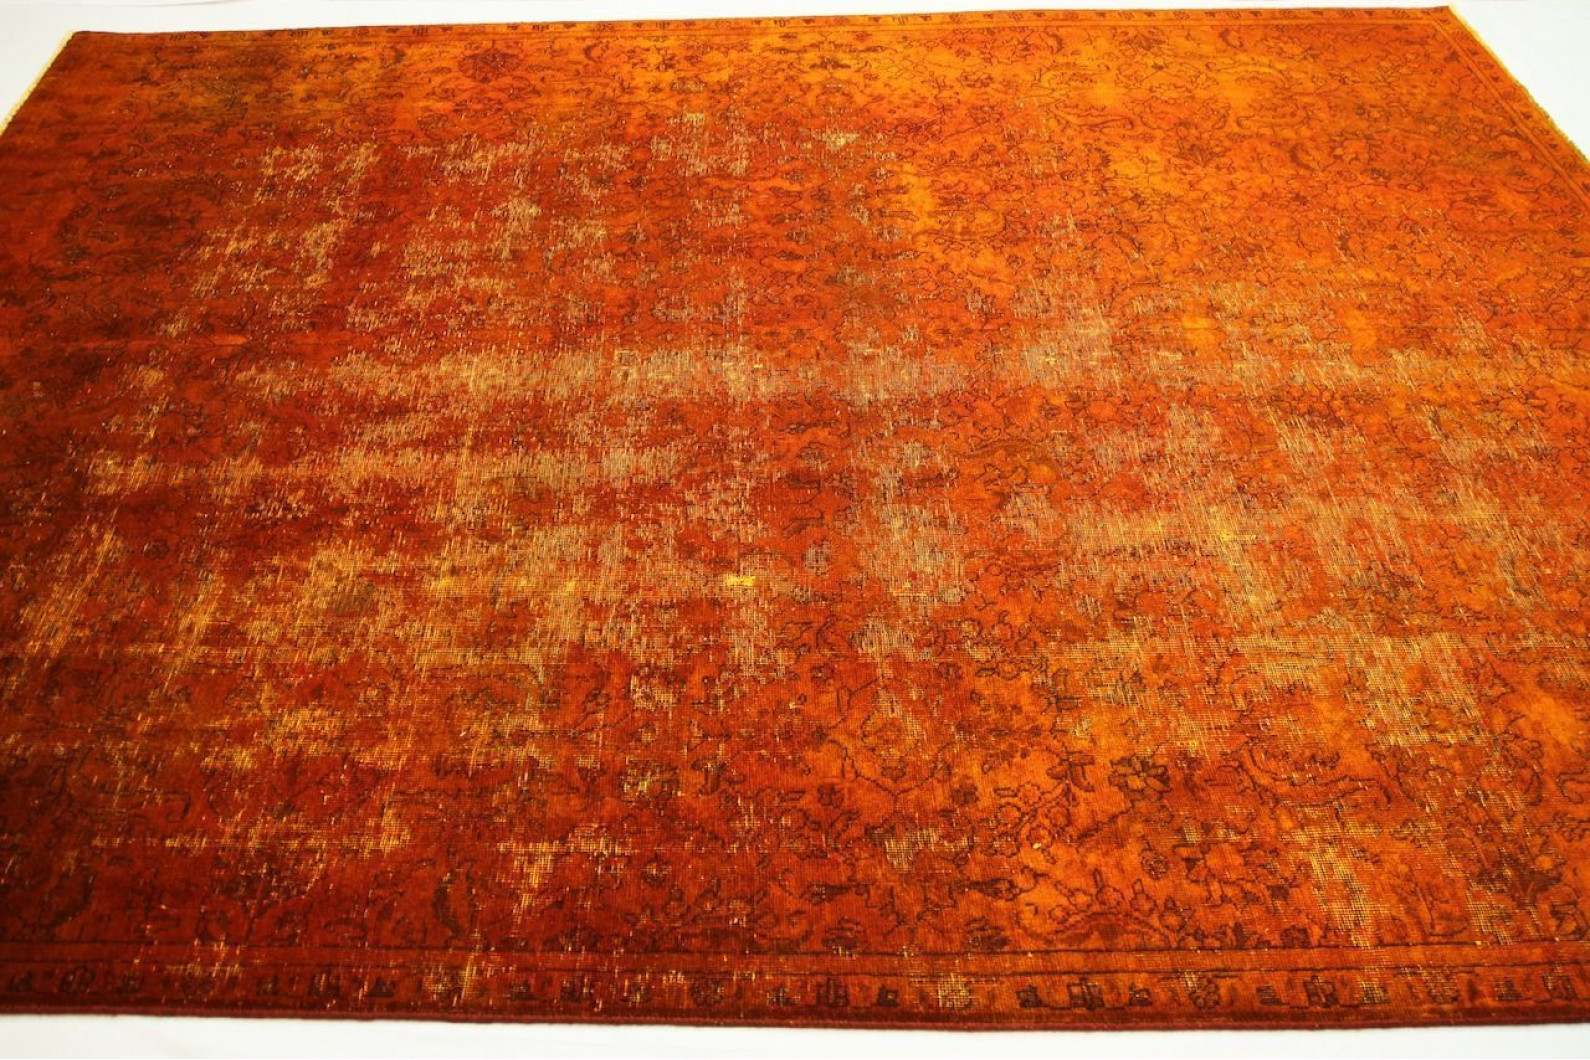 Teppich orange  Vintage Teppich Orange in 330x250cm (1001-2696) bei carpetido.de ...